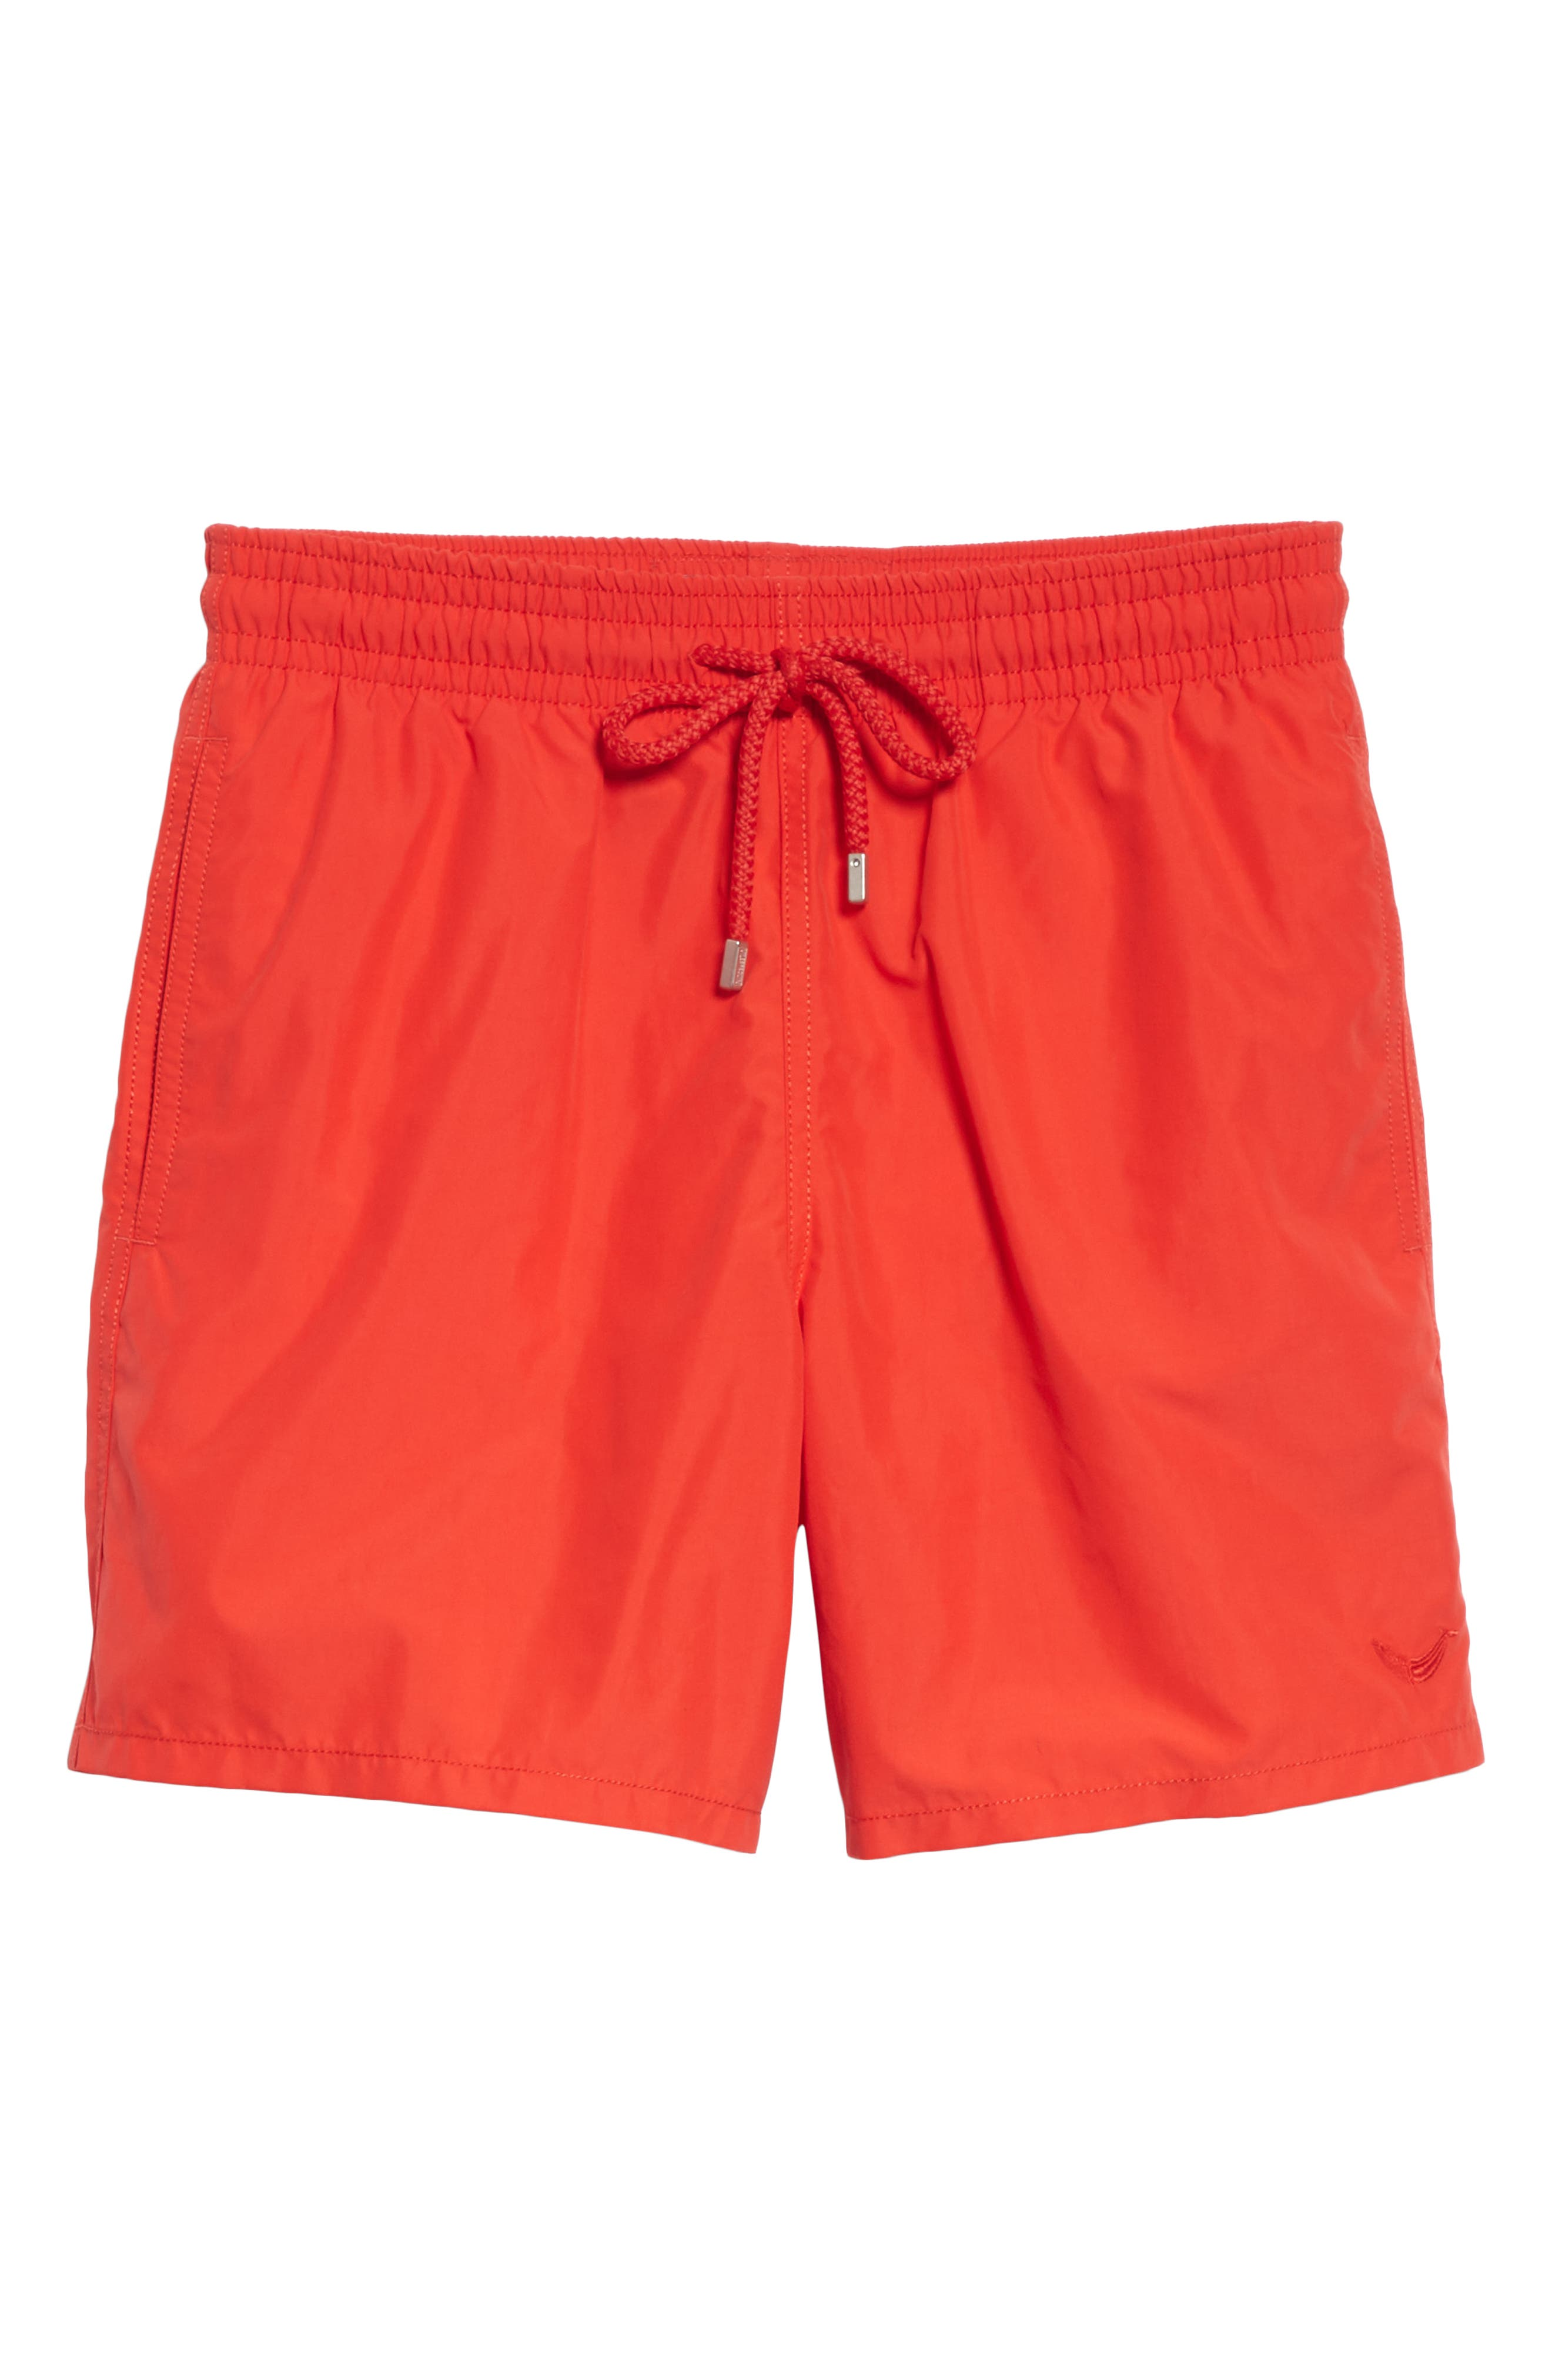 Magic Whales Water Reactive Swim Trunks,                             Alternate thumbnail 6, color,                             POPPY